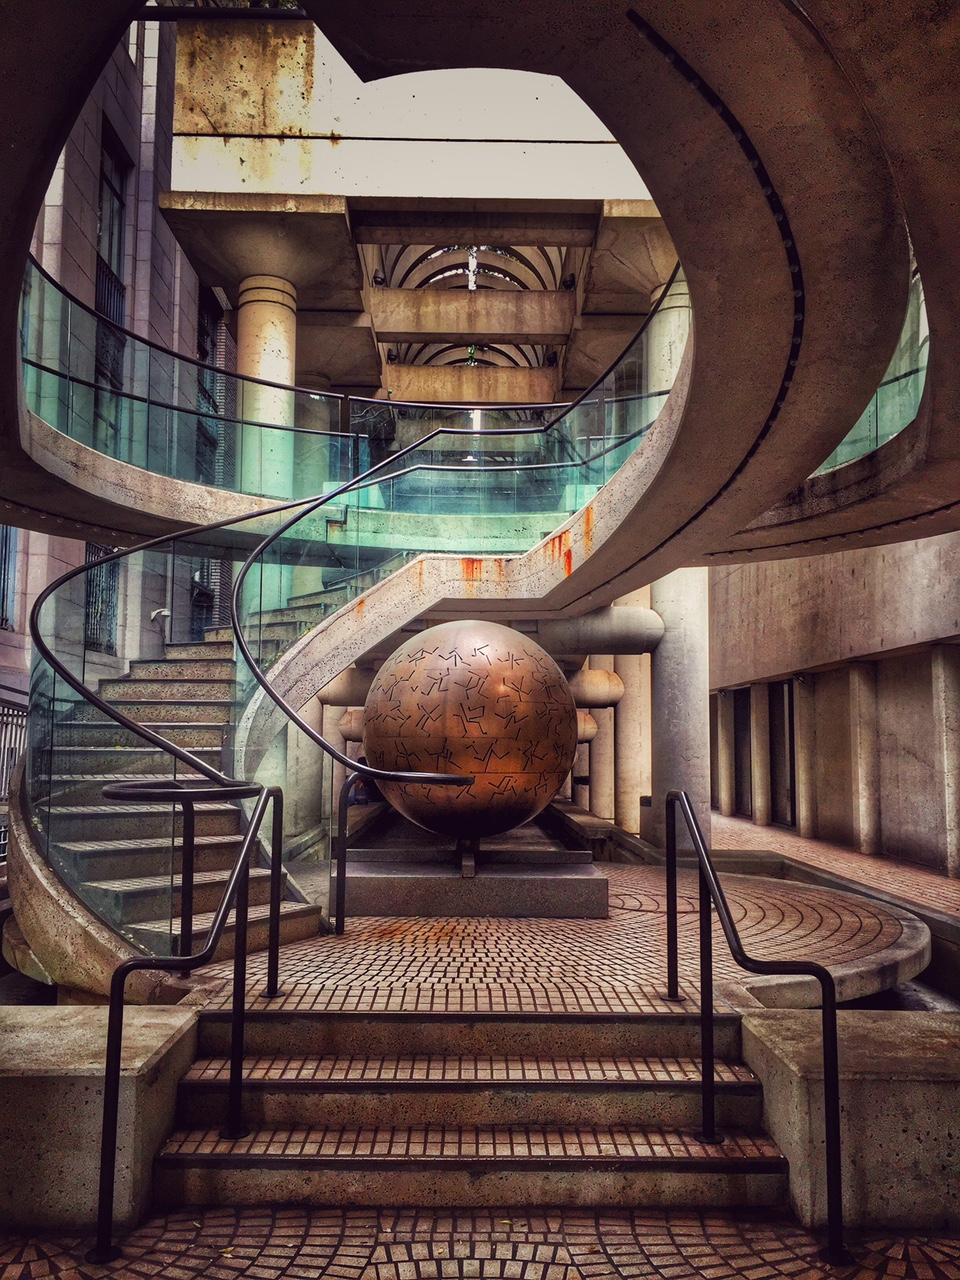 these stairs were in the embarcadero complex, and i loved them!